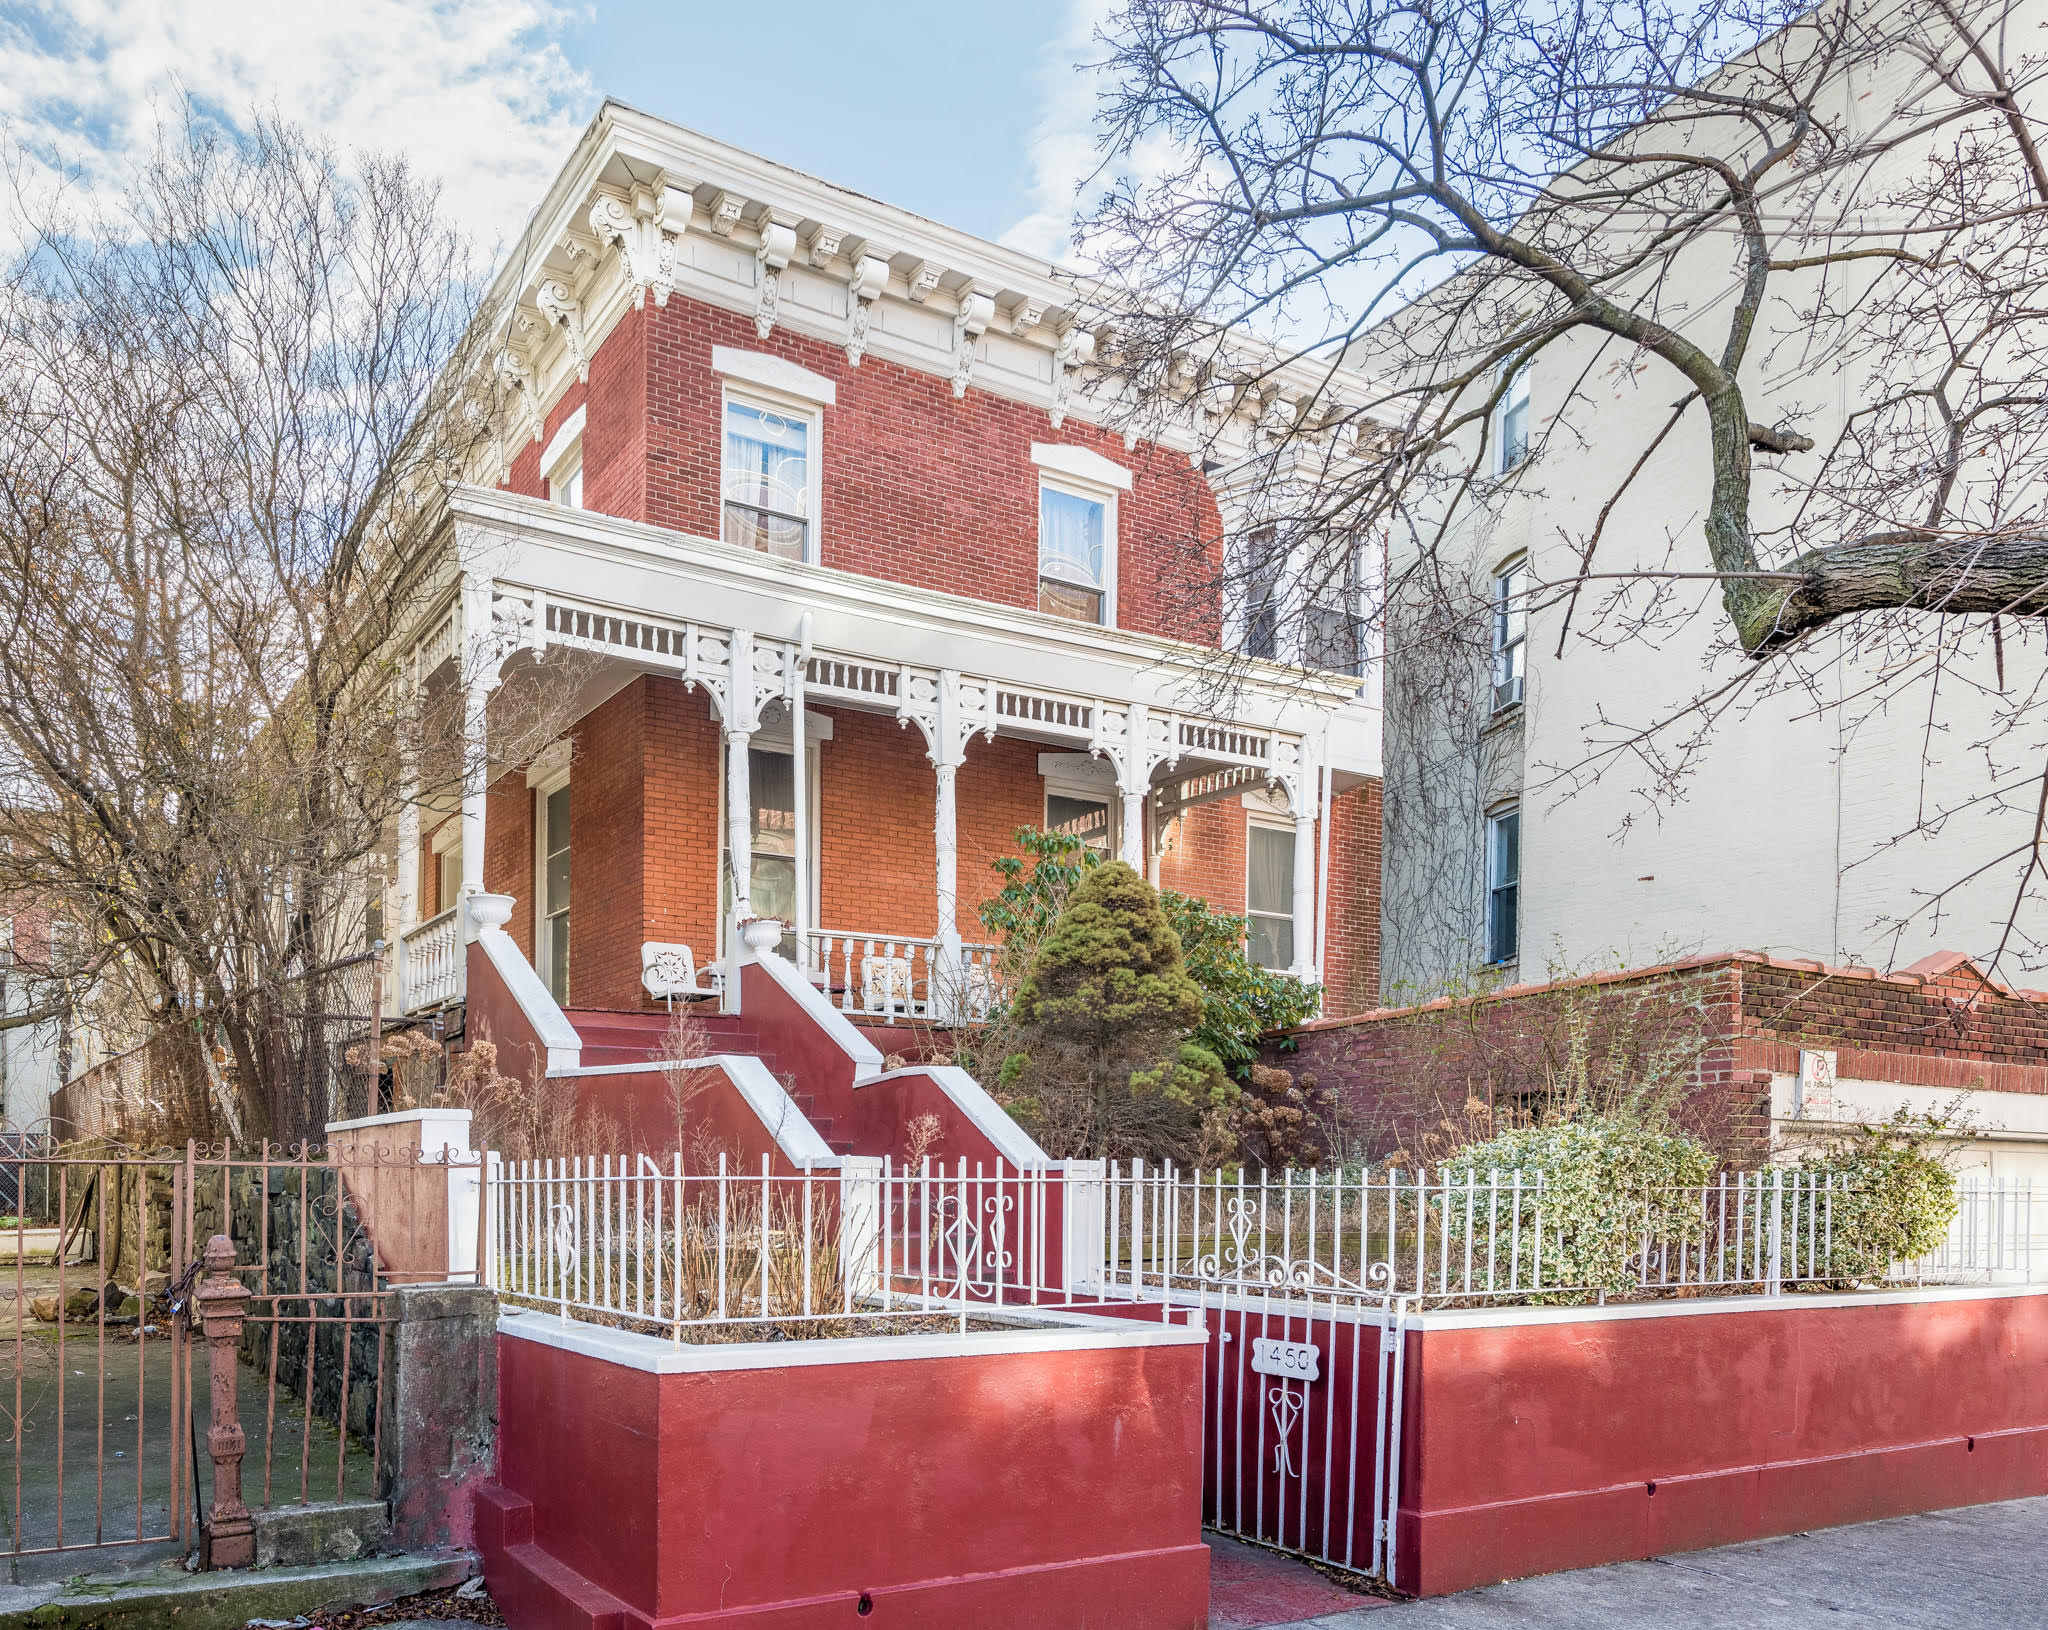 A detached, two-story Italianate-style house with a wraparound porch and a few trees and plants around it.